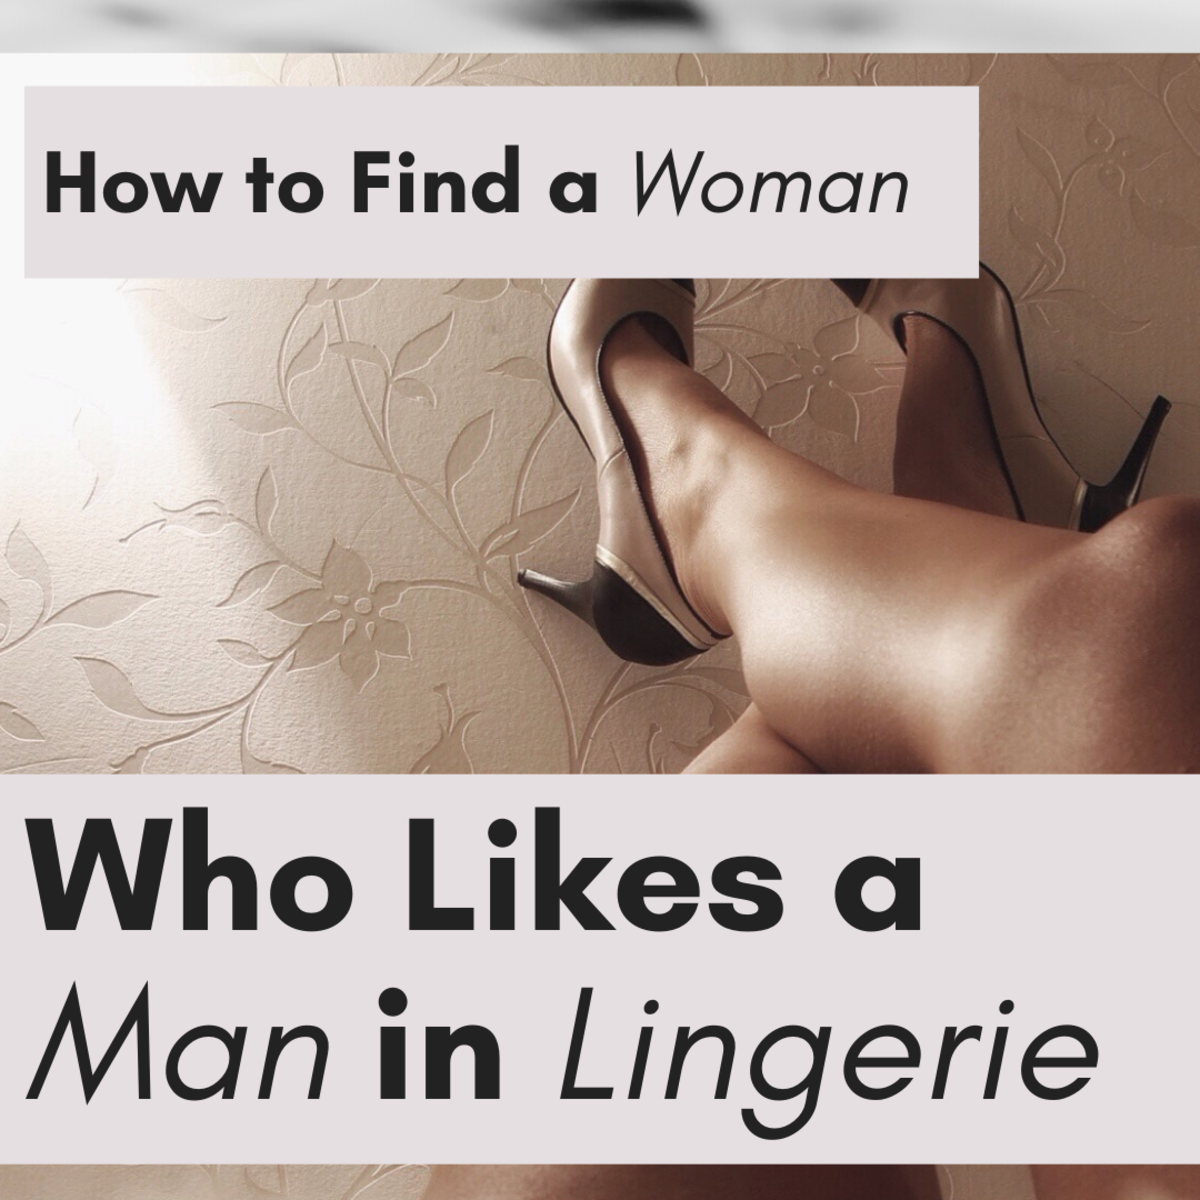 How to Find Women Who Like Men in Lingerie